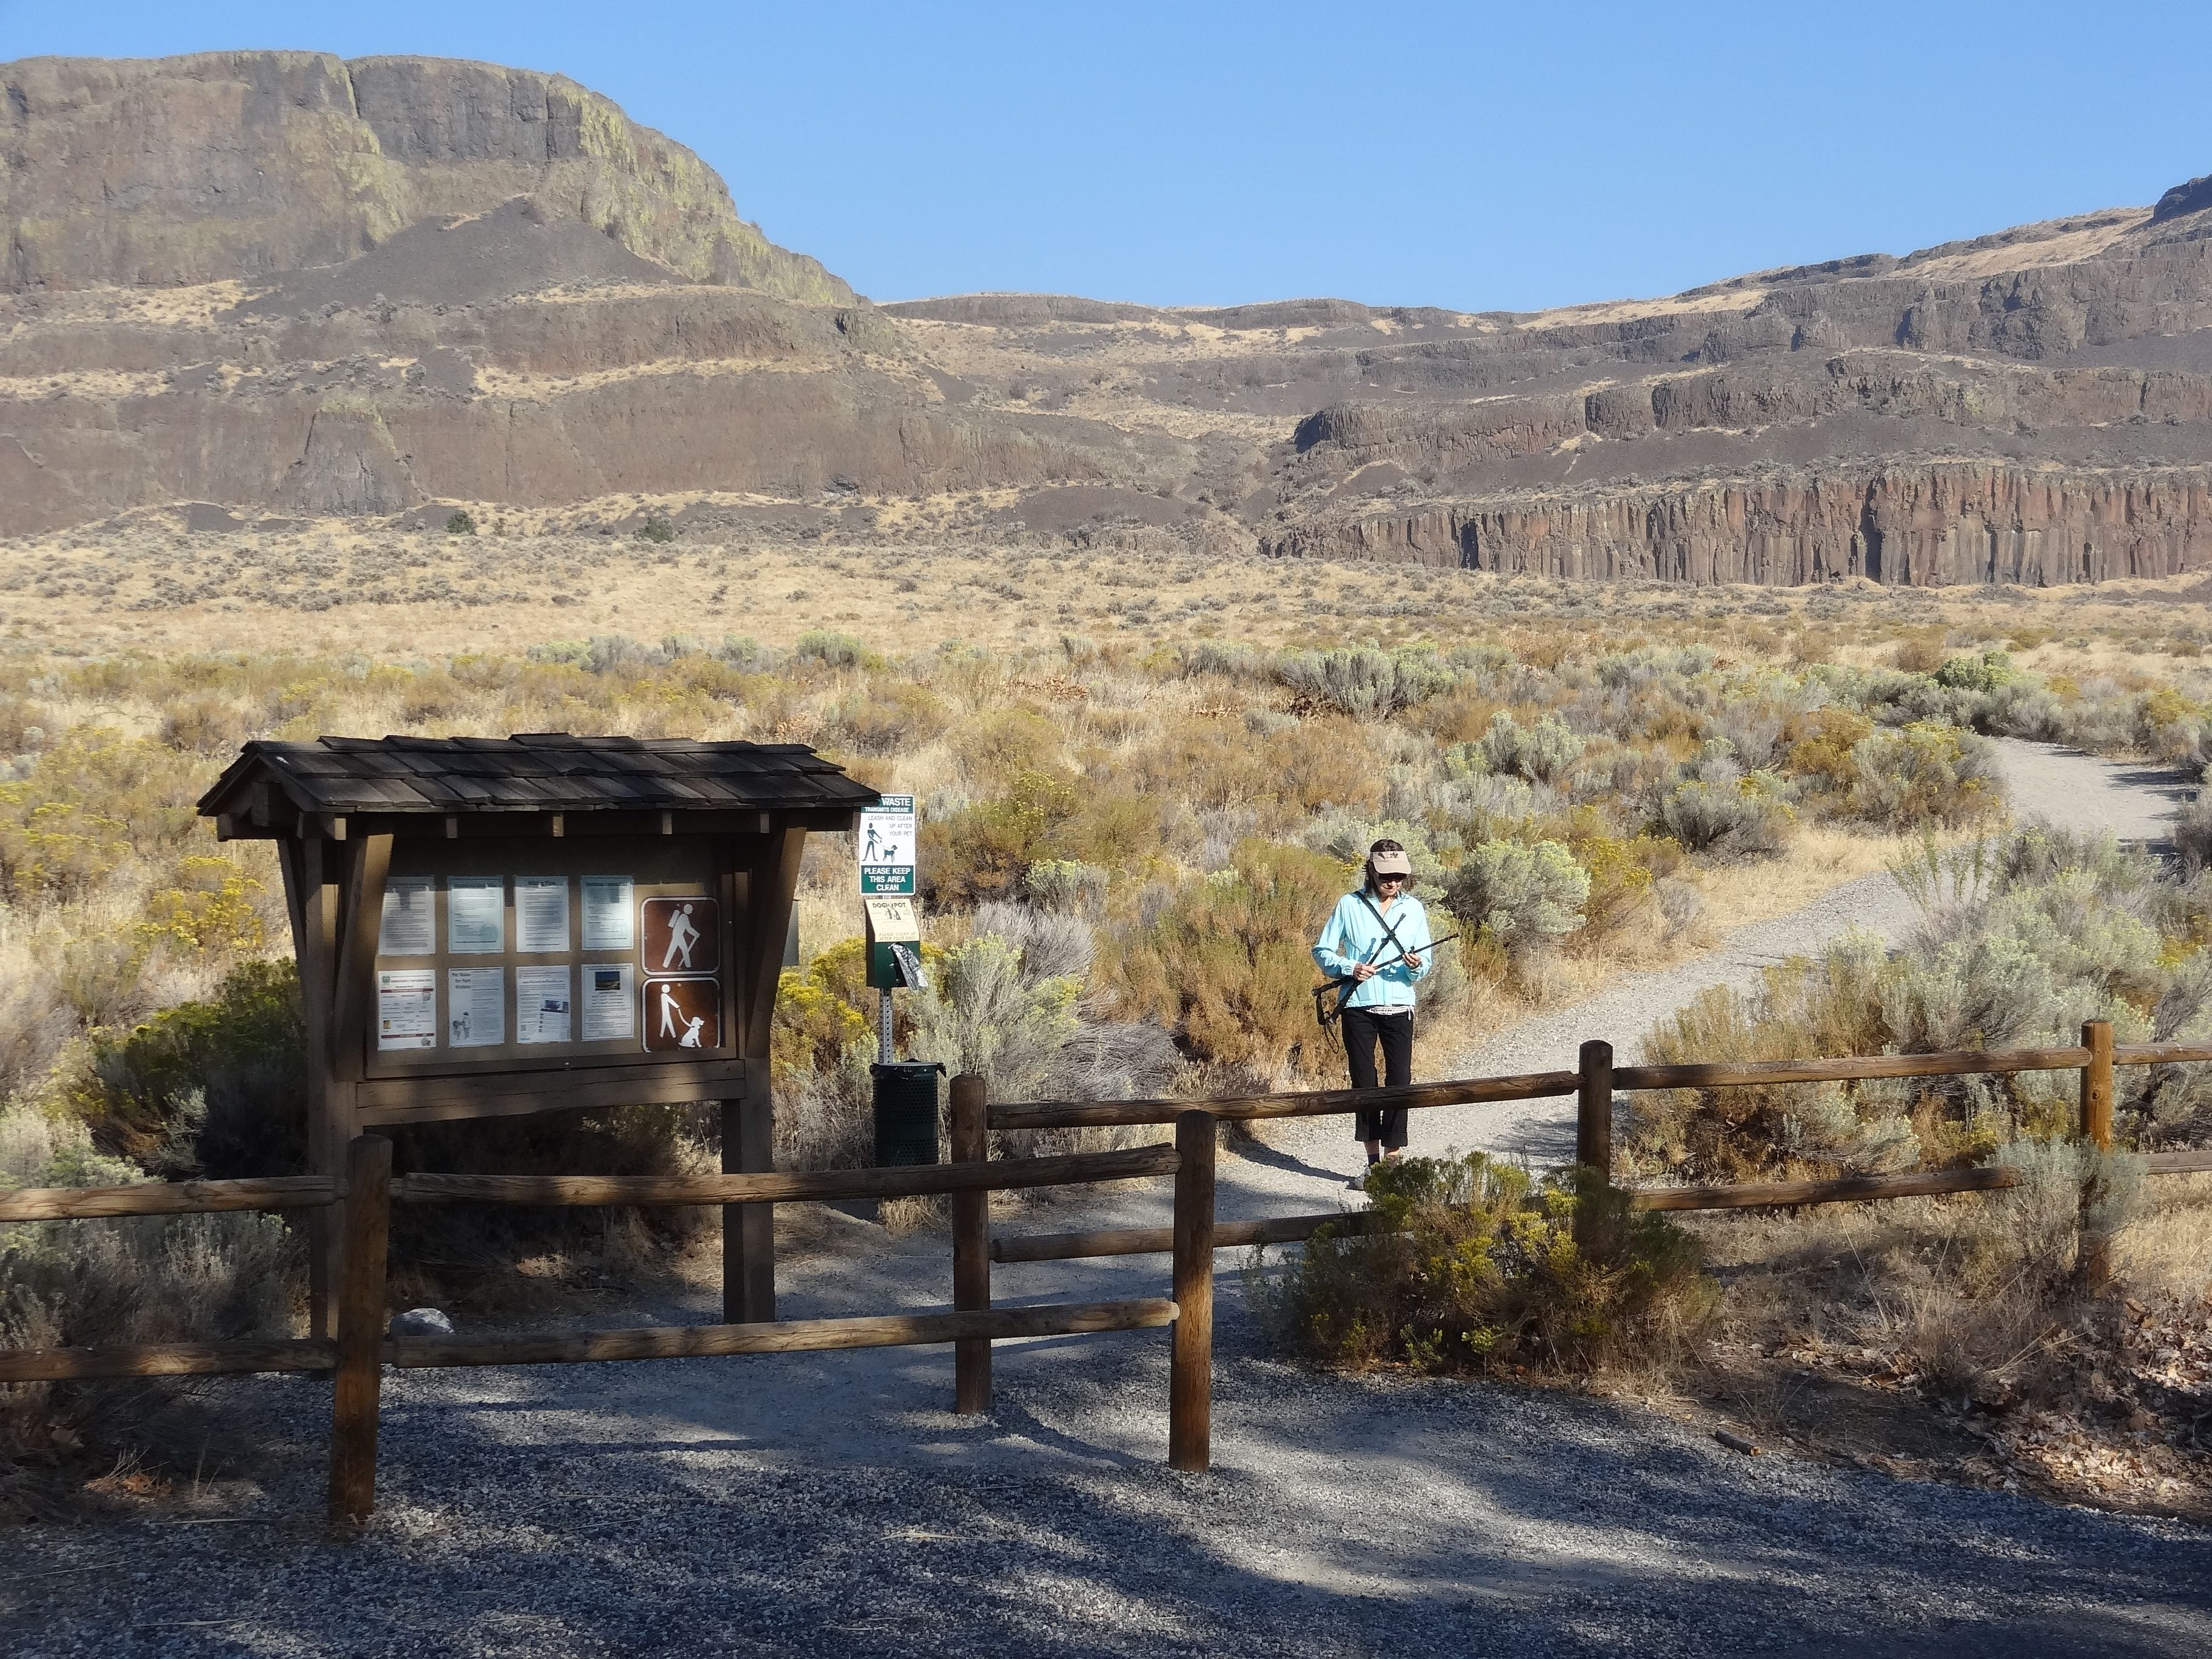 Steamboat Rock trailhead at the campgound